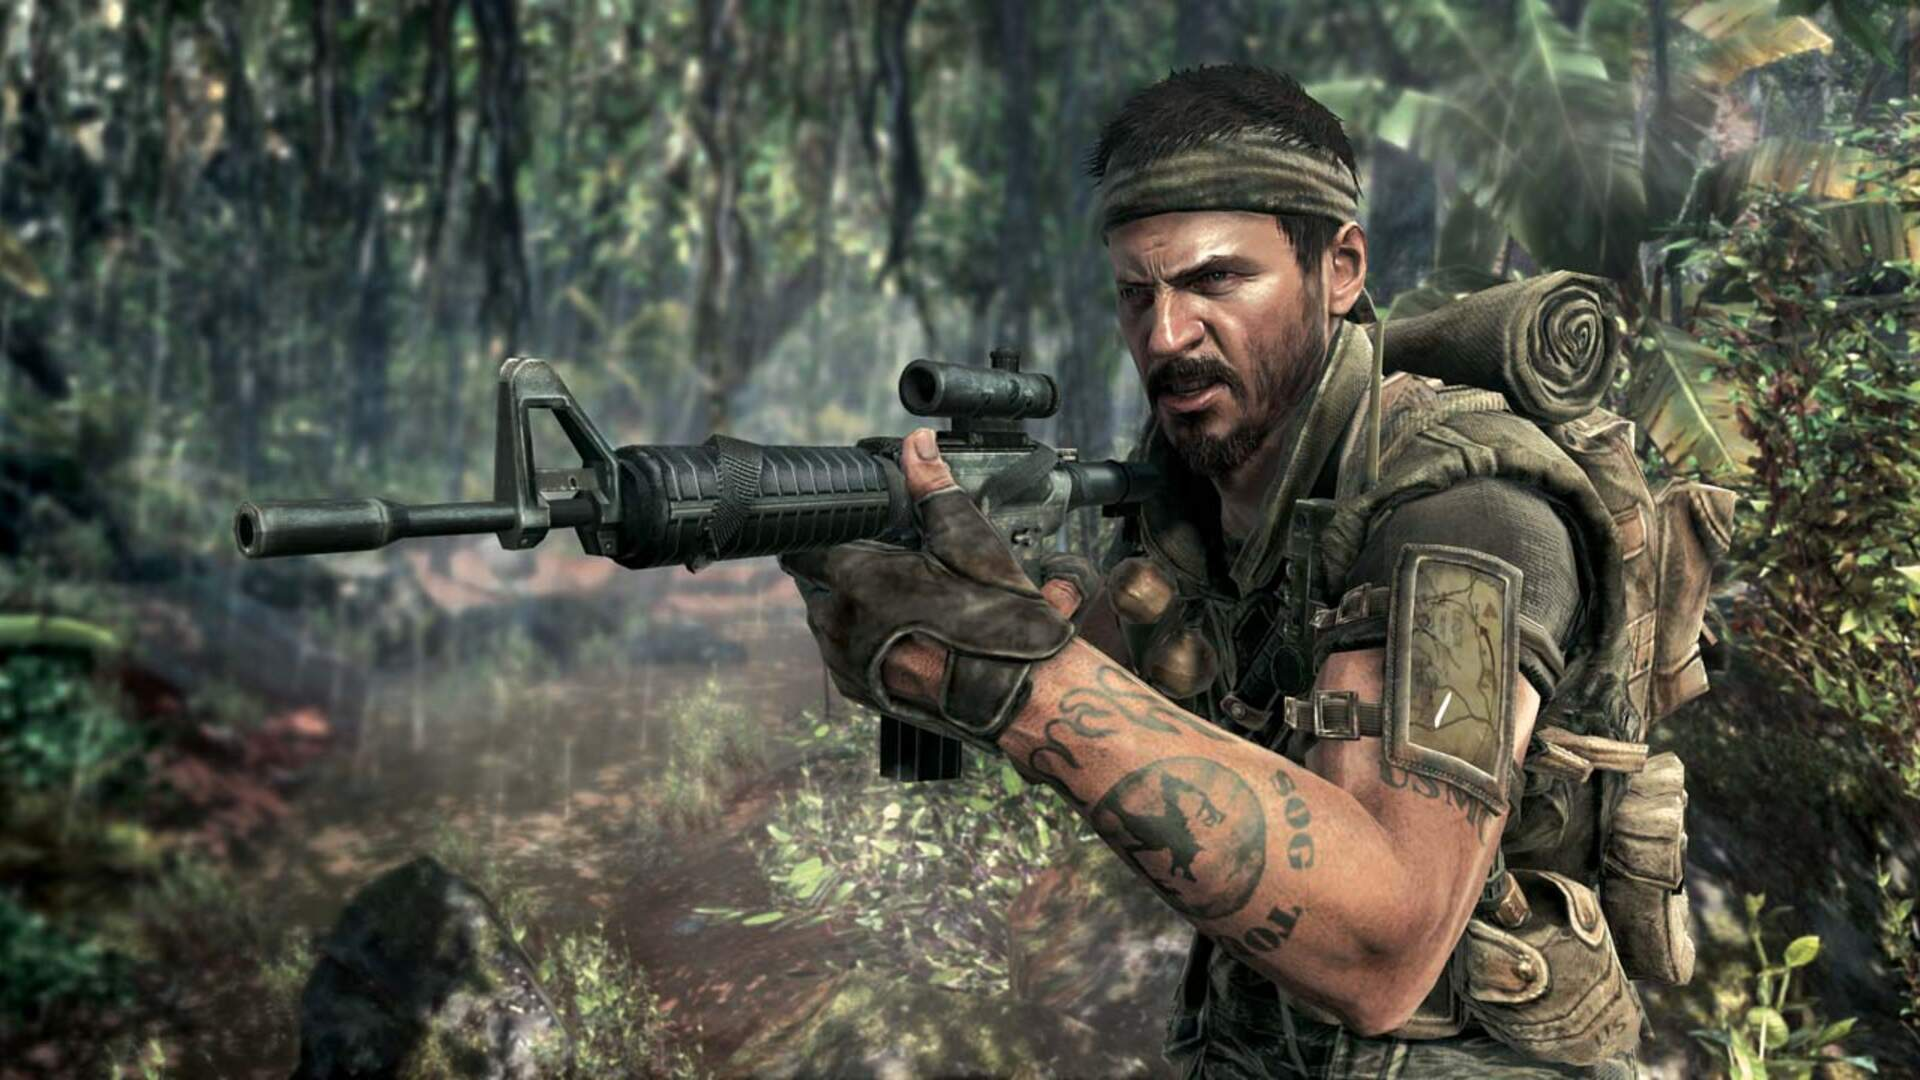 Report: Call of Duty: Black Ops Cold War Pre-Orders Will Unlock Frank Woods As a Warzone Operator